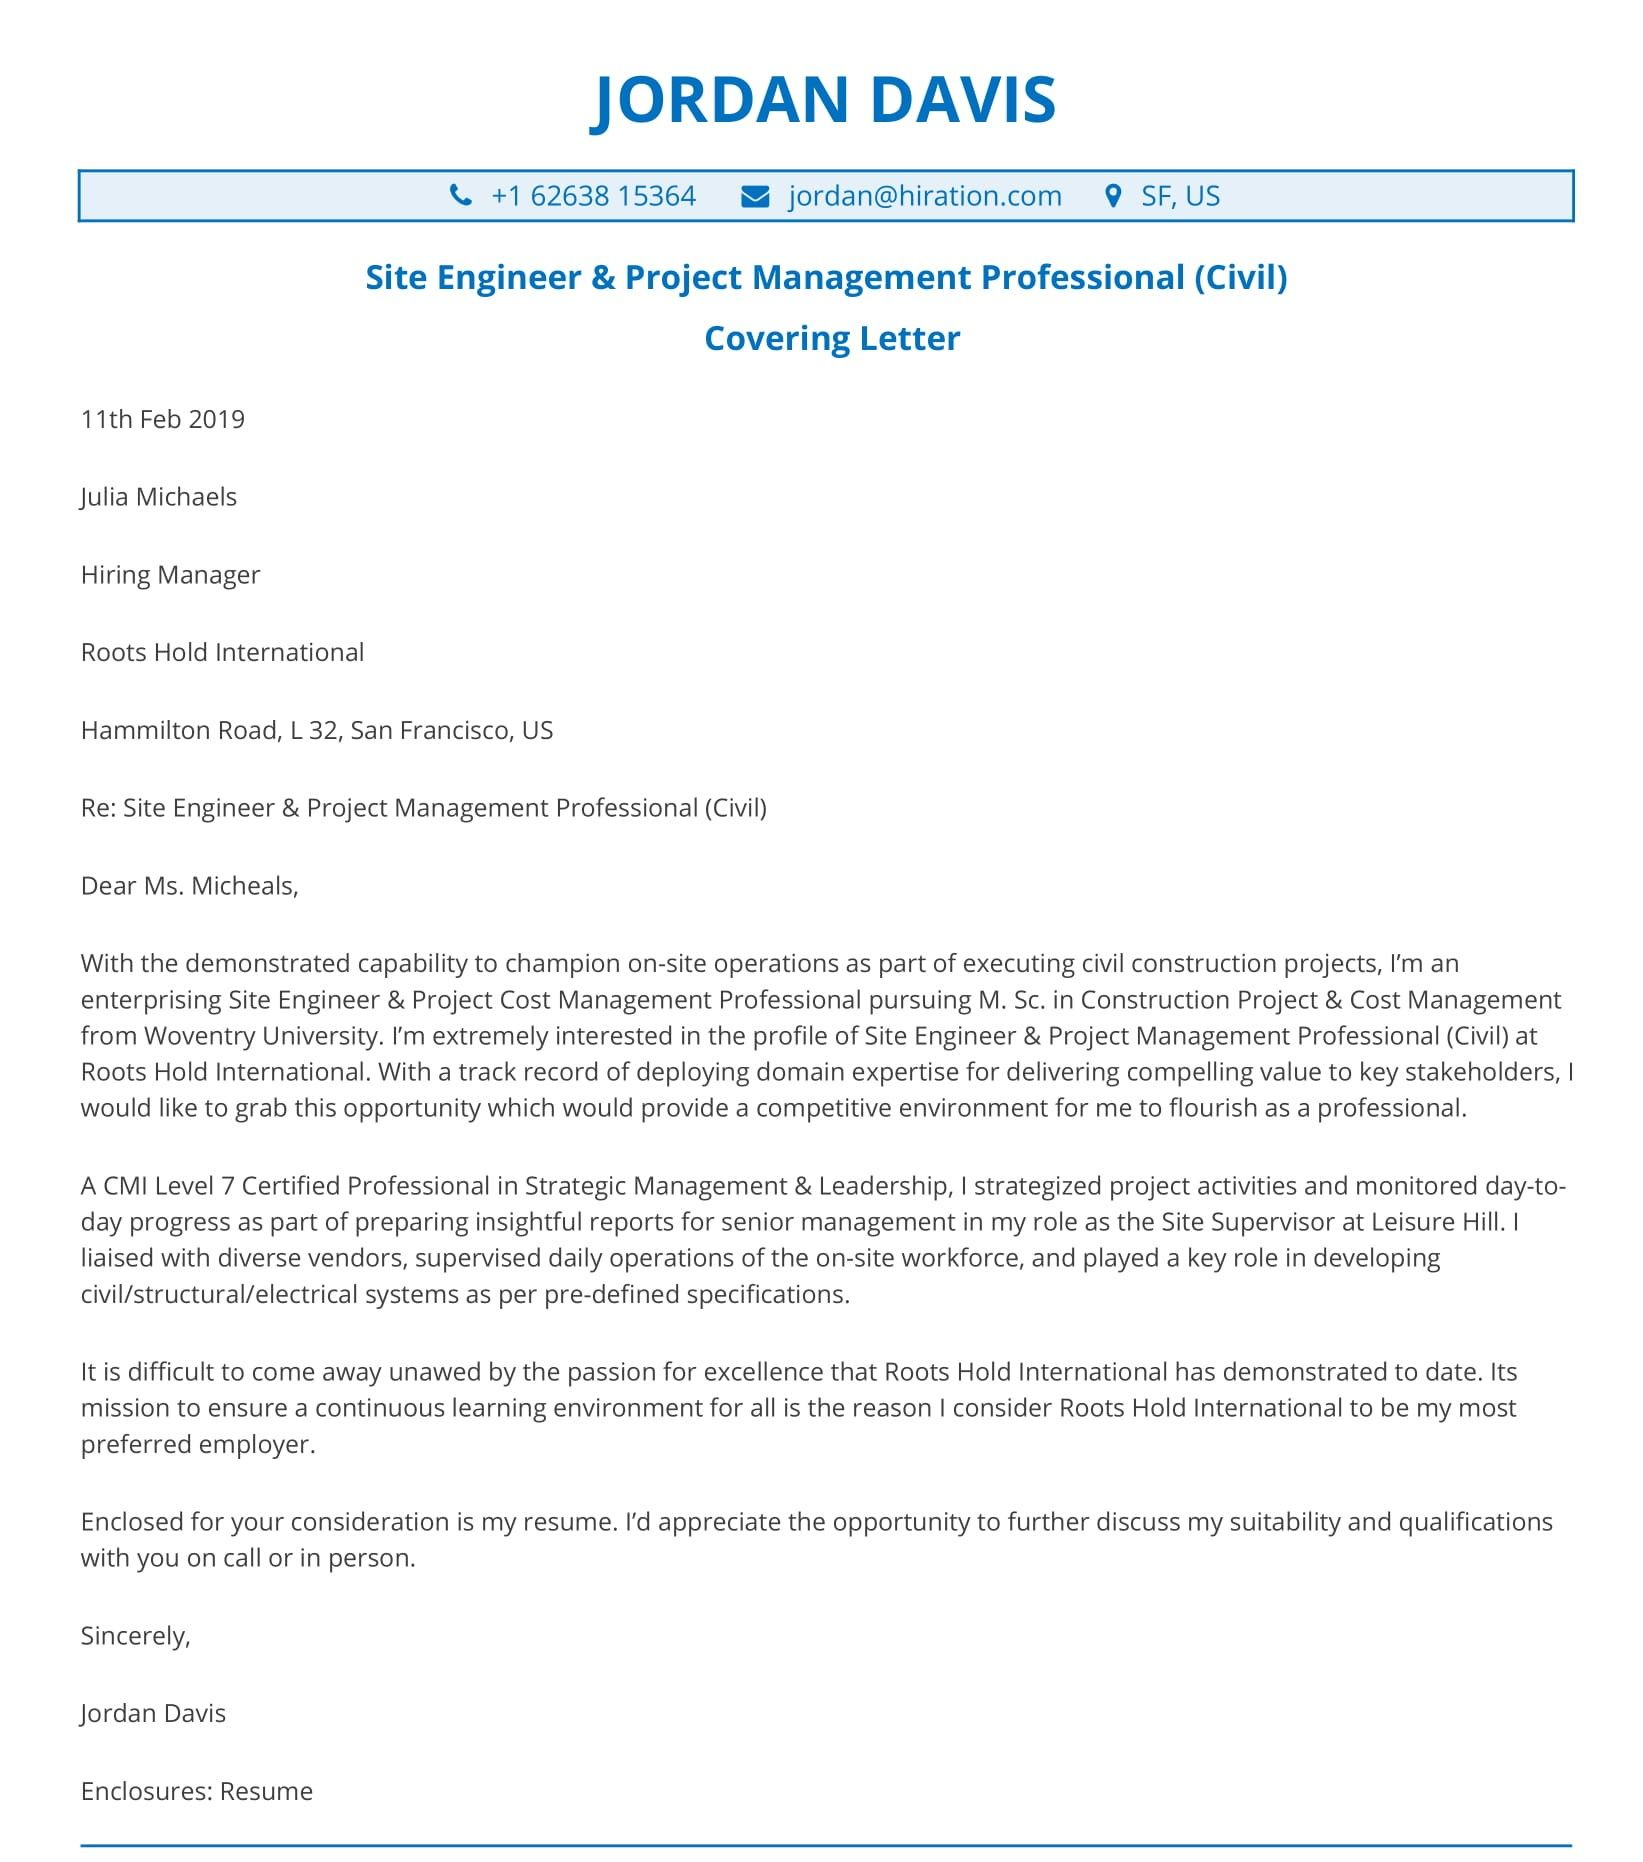 Operations Manager Cover Letter Sample from s3-us-west-2.amazonaws.com